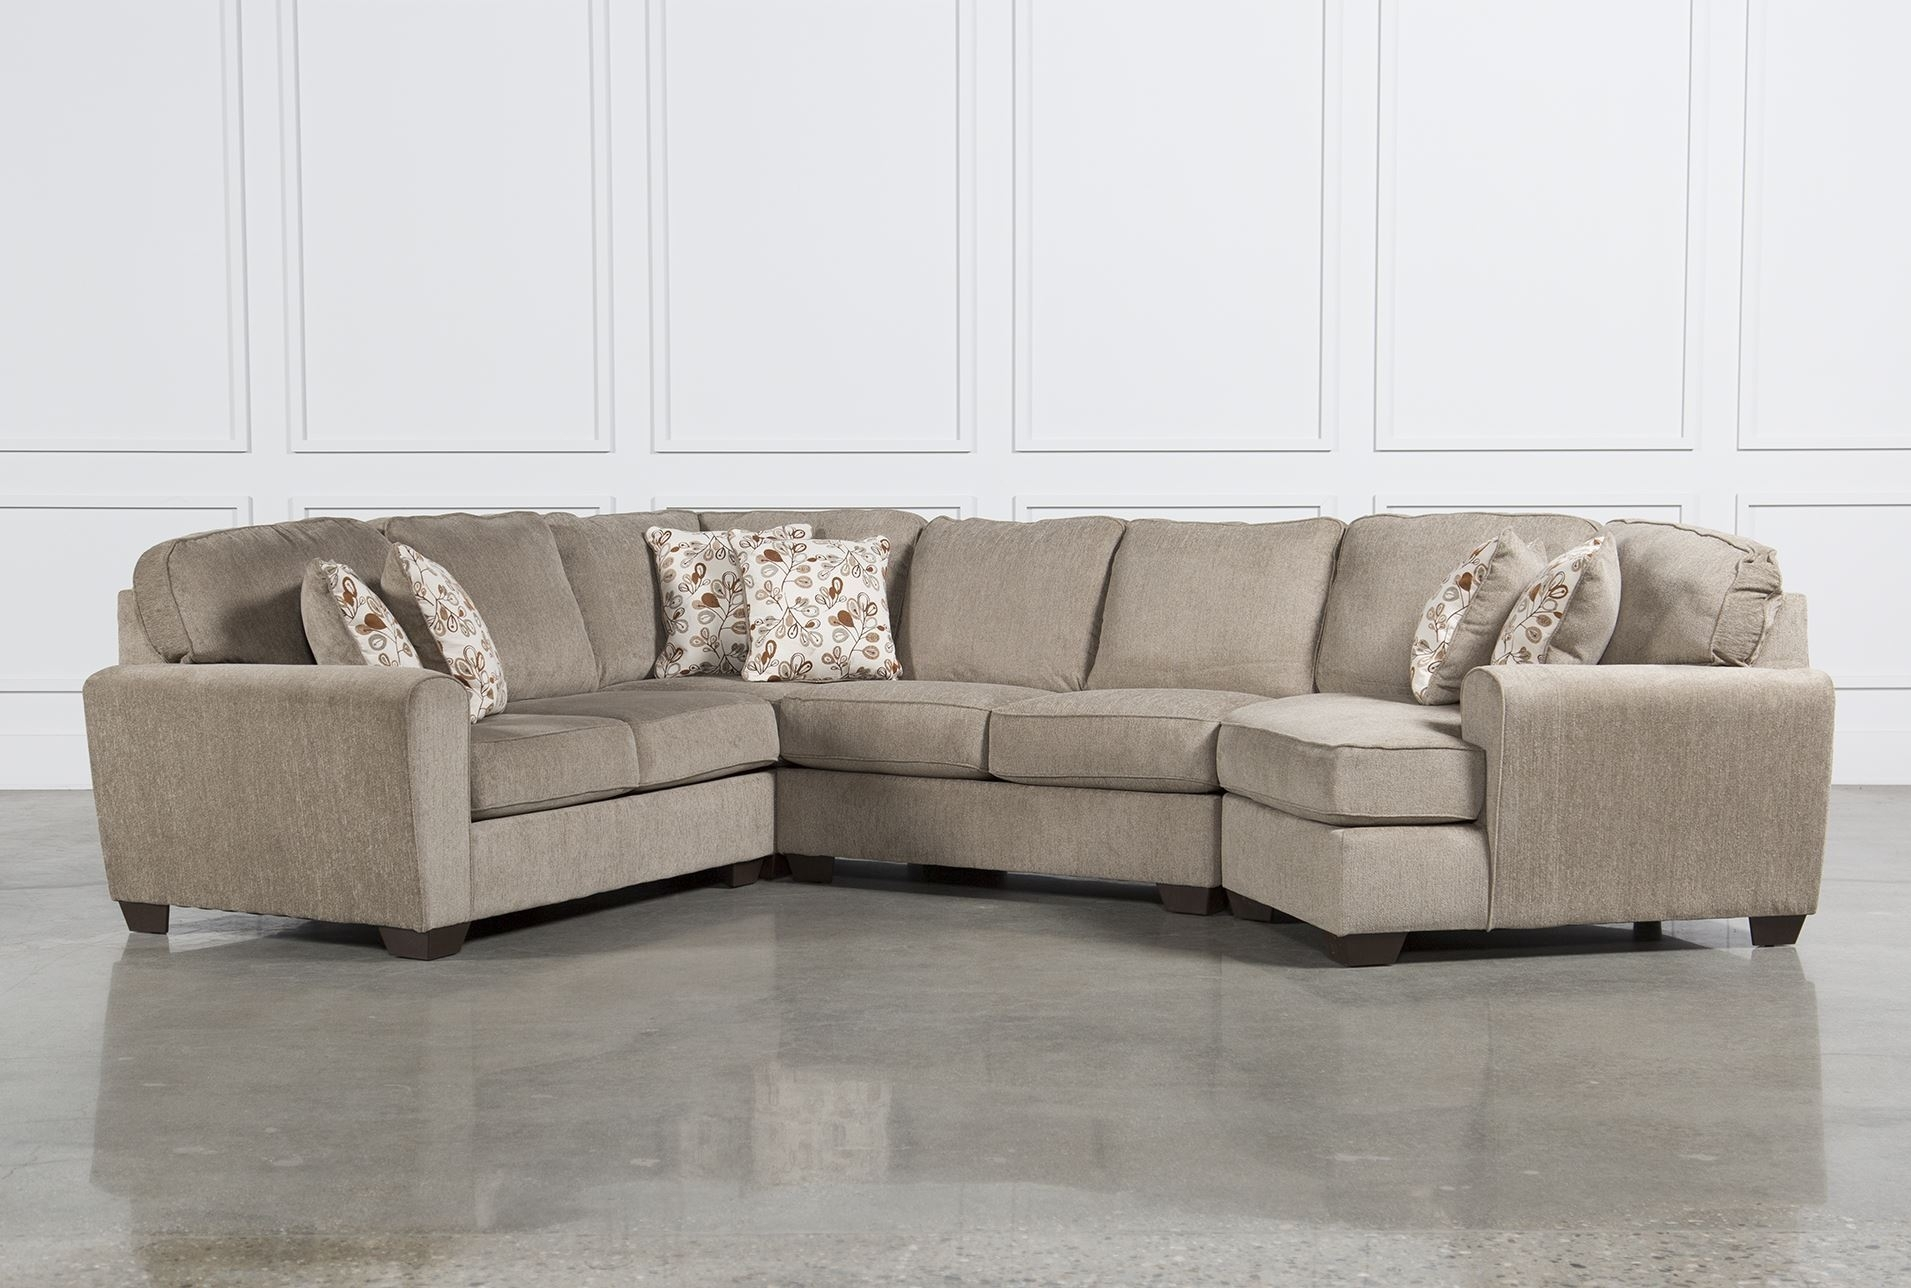 Corbin 3 Piece Sectional W Raf Chaise Ideas Of Living Spaces In Avery 2 Piece Sectionals With Raf Armless Chaise (View 25 of 25)